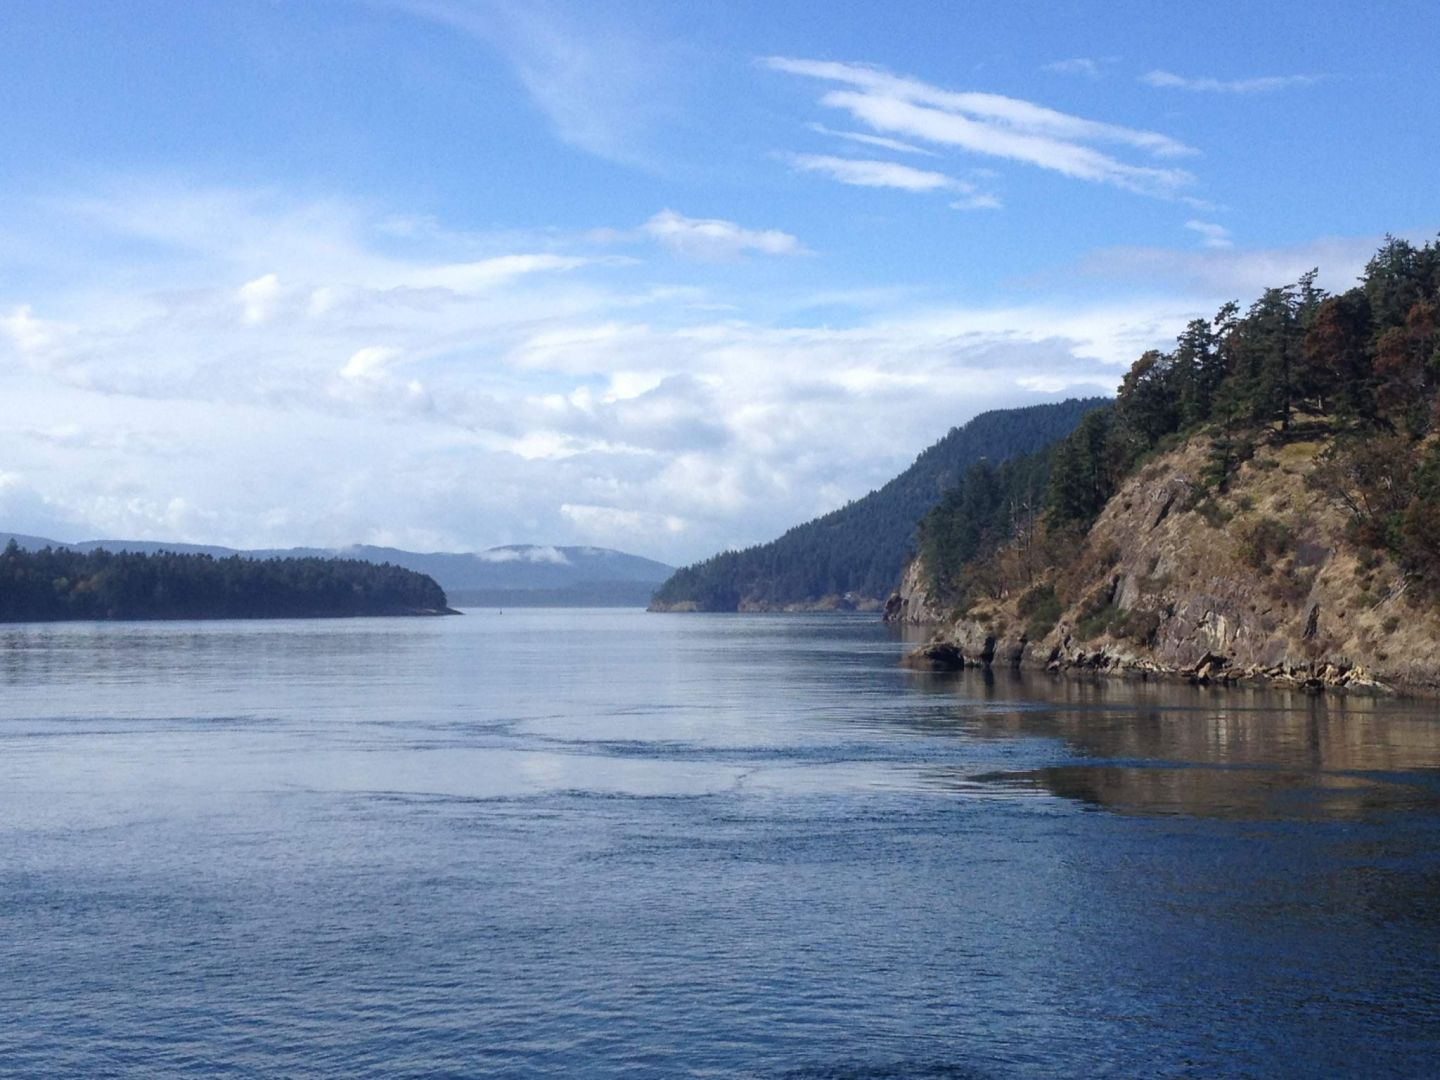 The ferry from Tsawwassen to Salt Spring Island, British Columbia